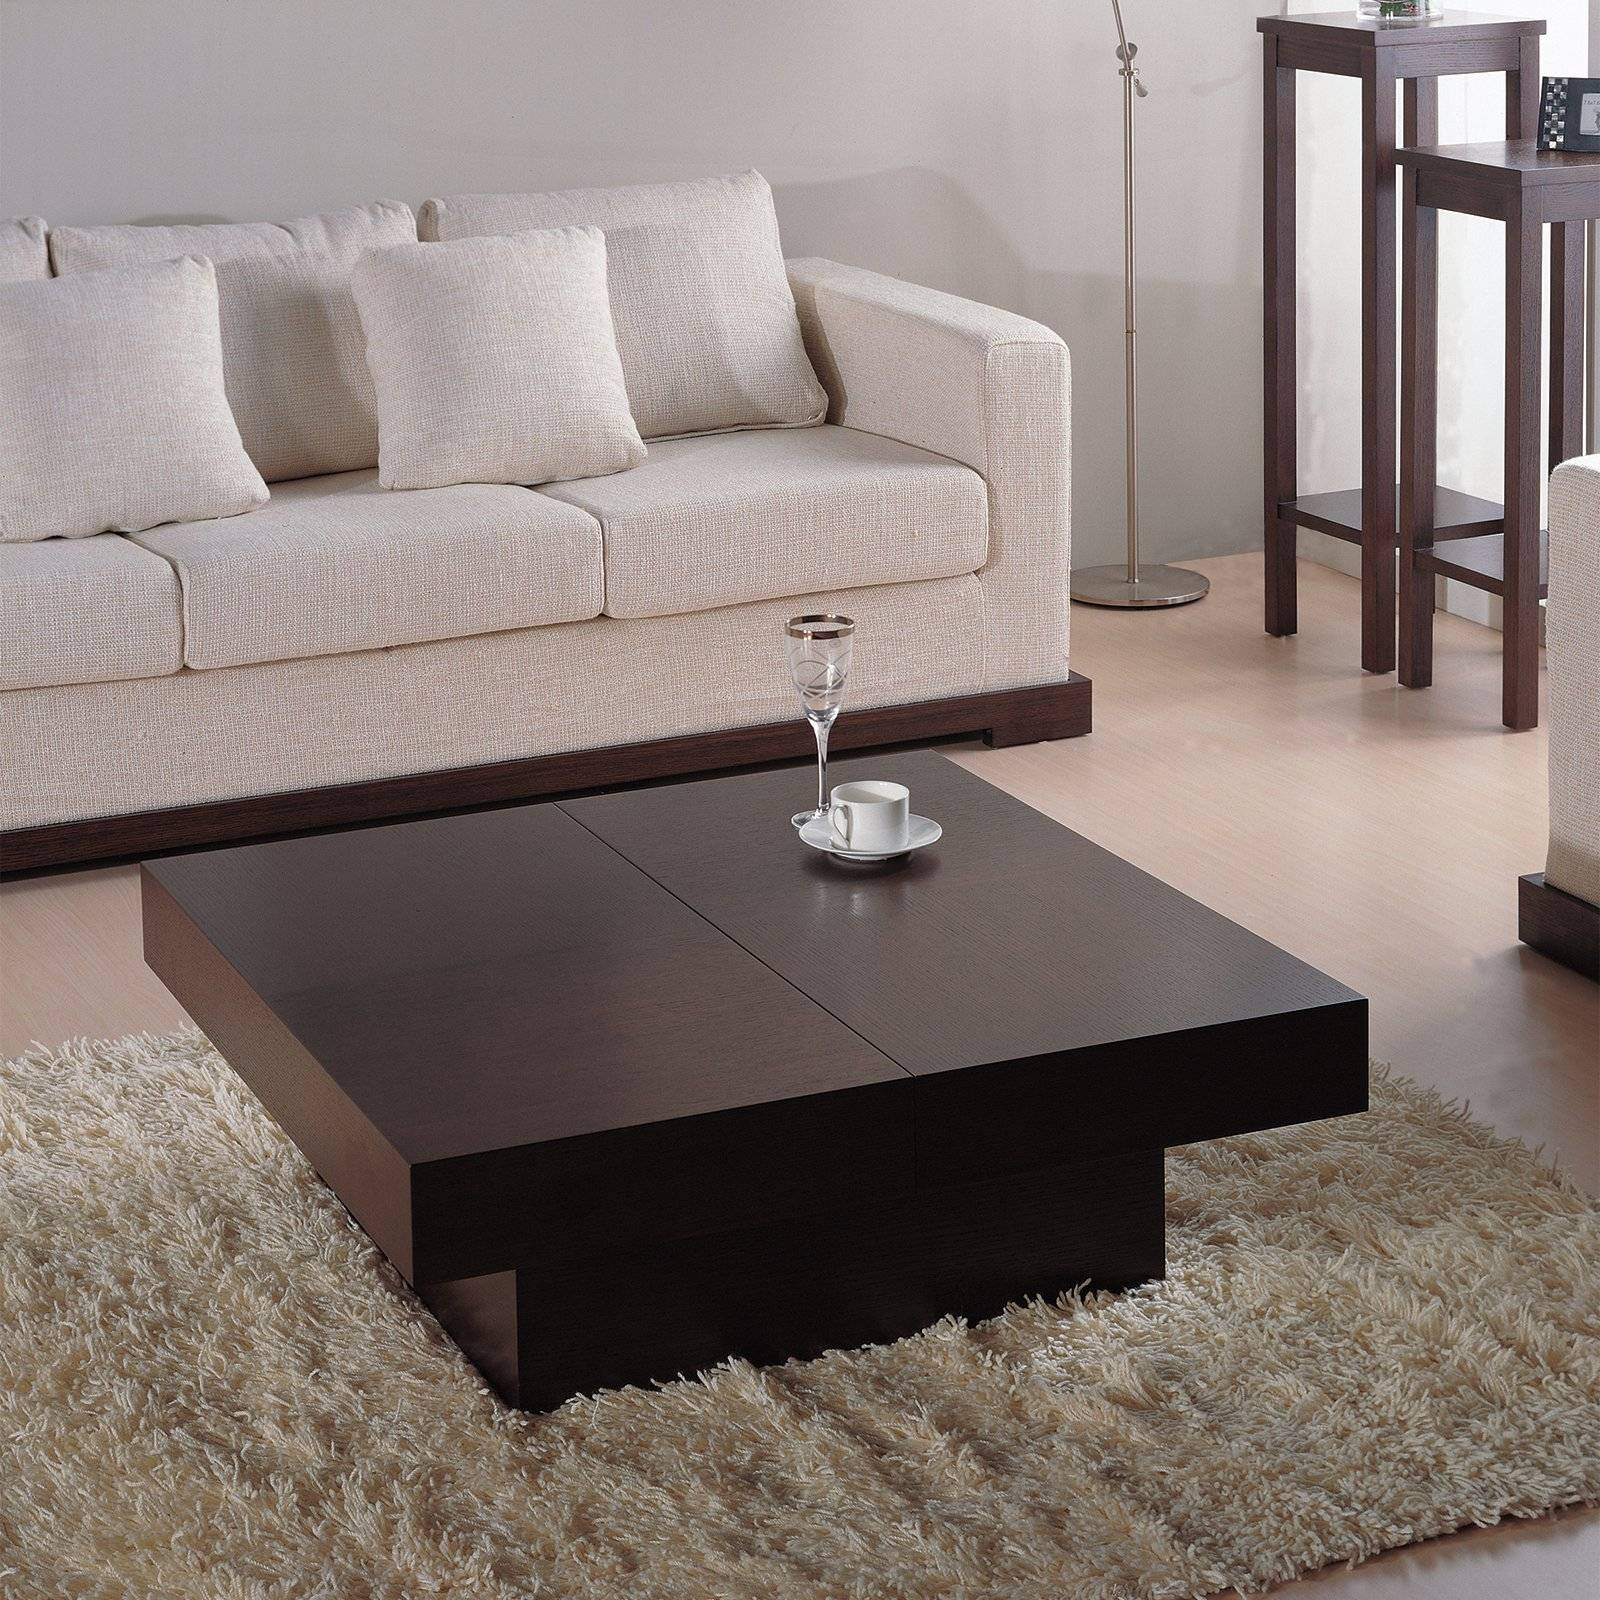 Nile Square Coffee Table - Dark Brown Oak | Hayneedle intended for Square Oak Coffee Tables (Image 16 of 30)